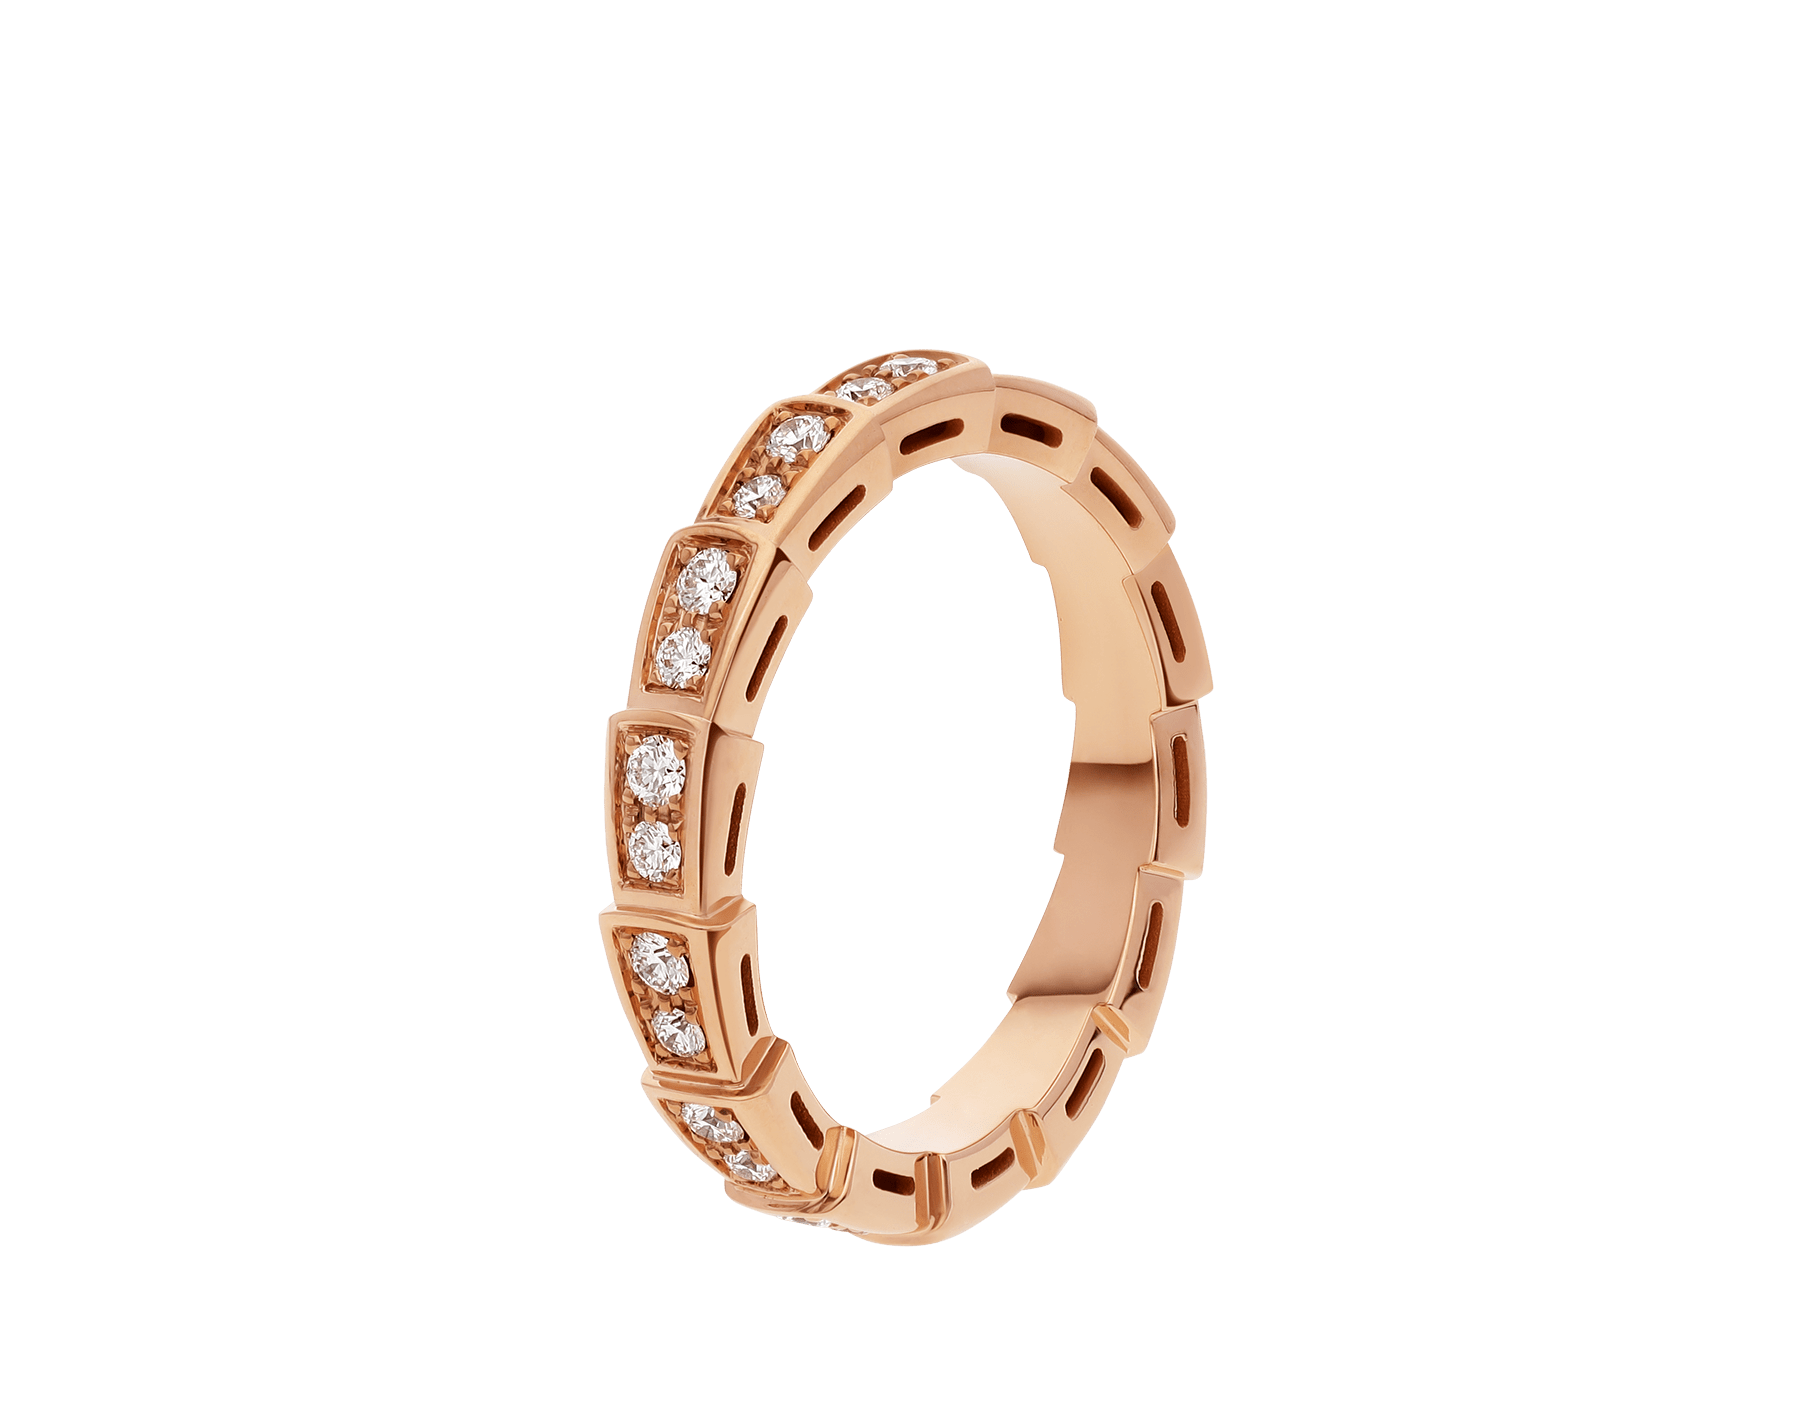 Serpenti wedding band in 18 kt rose gold, set with full pavé diamonds. AN856980 image 1